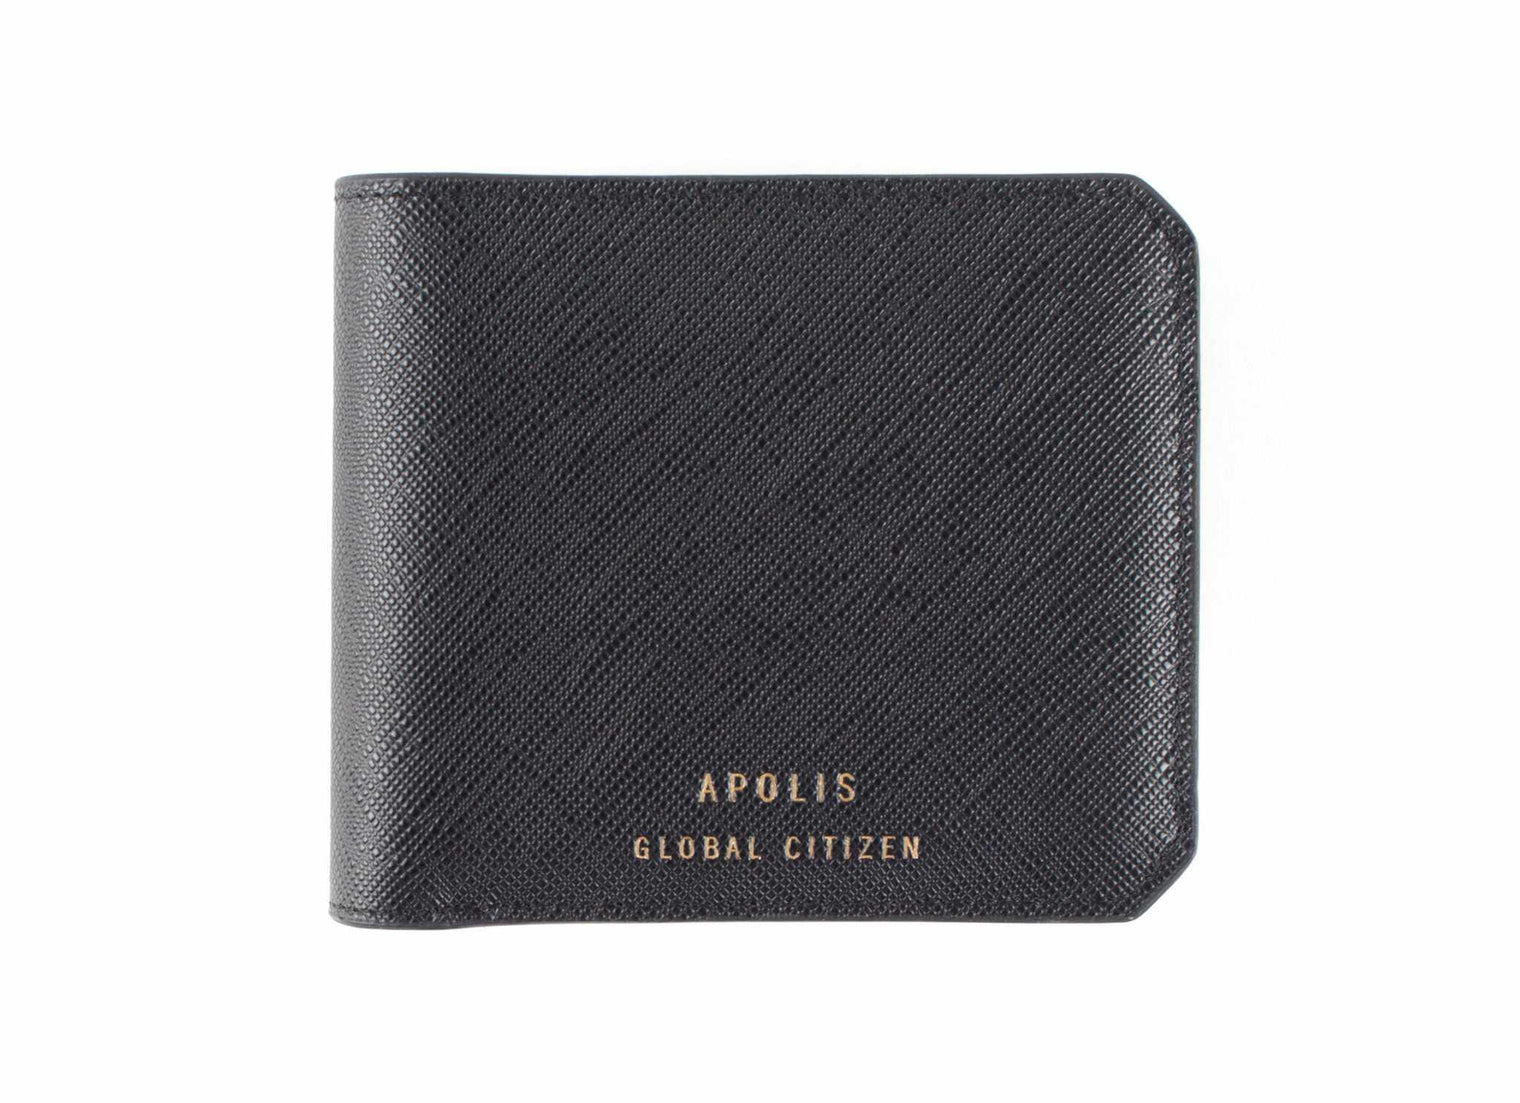 Transit Issue Travel Wallet